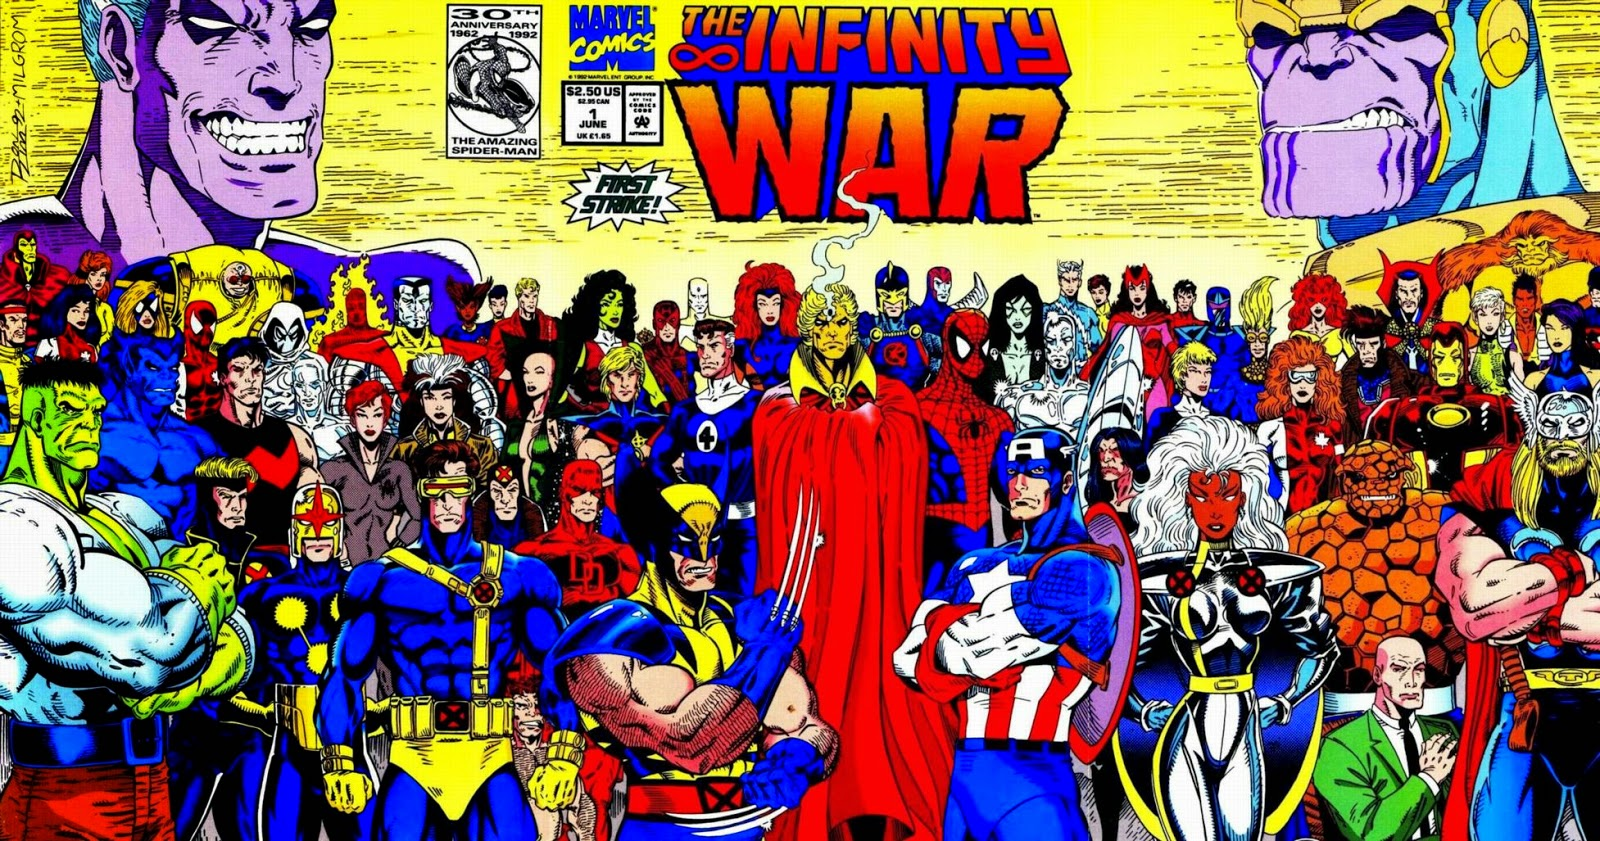 Near Mint – The Infinity War